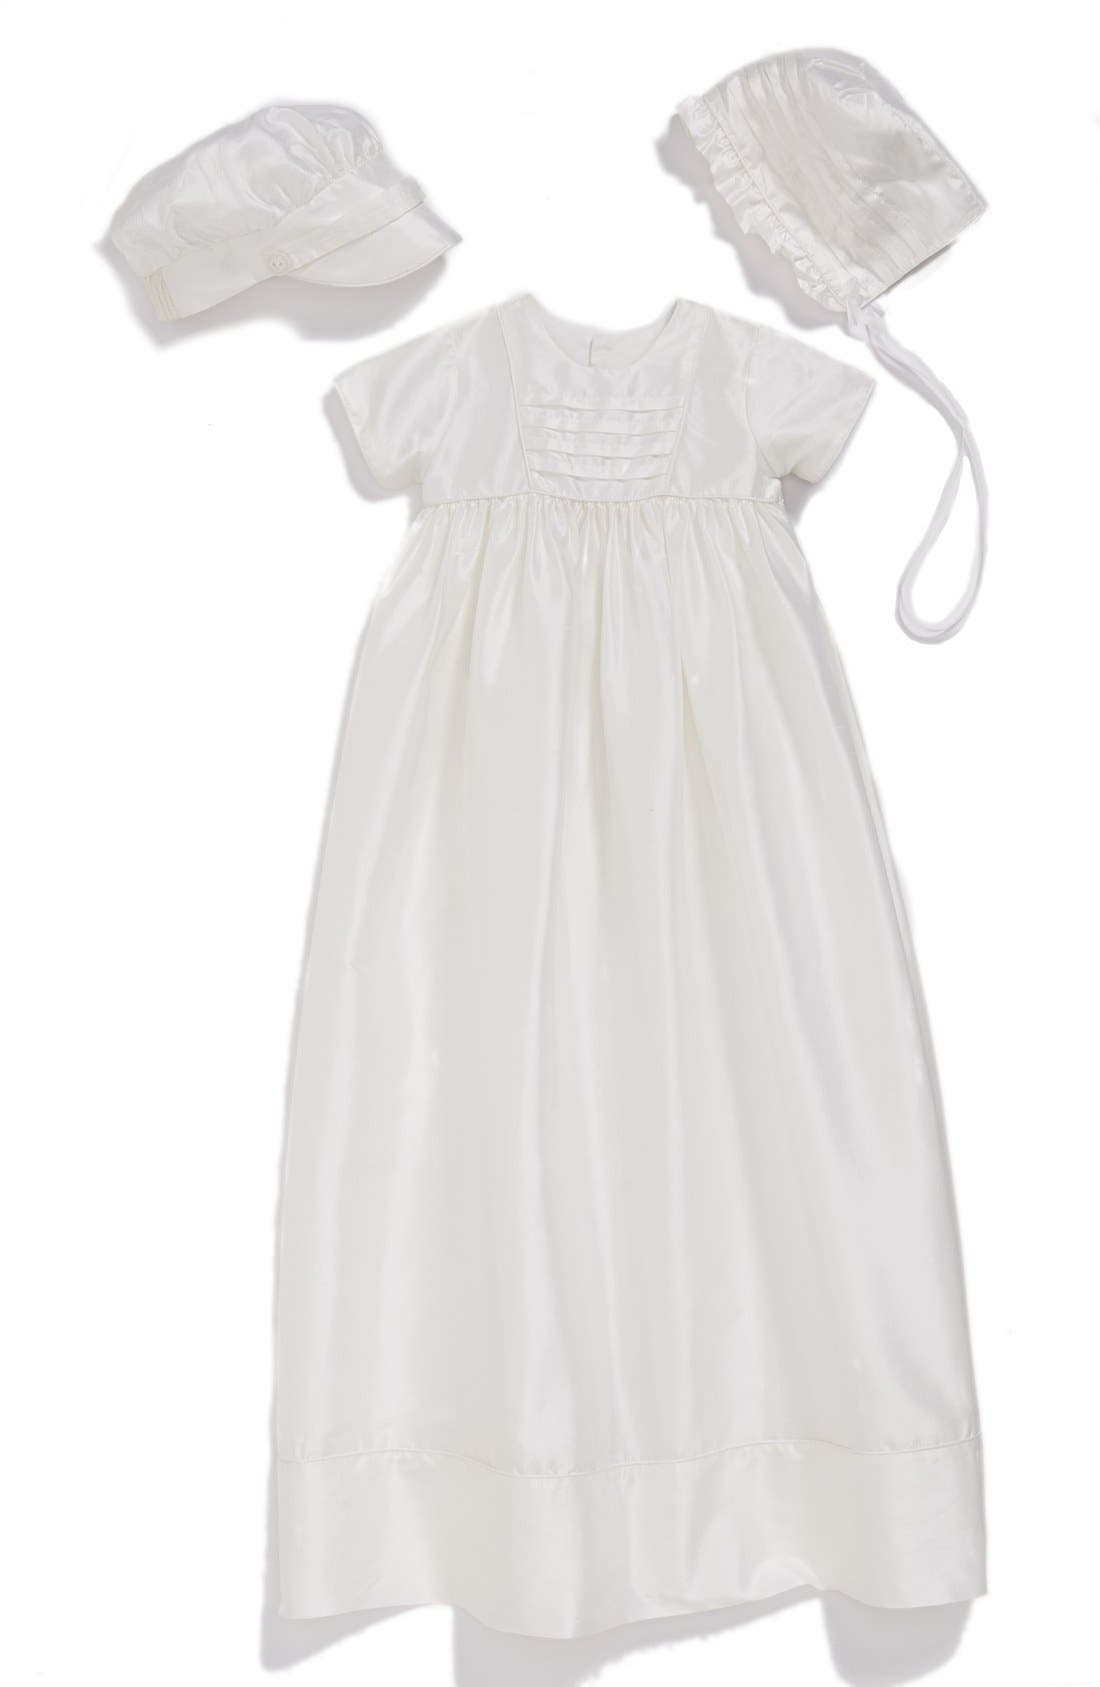 LITTLE THINGS MEAN A LOT Dupioni Christening Gown